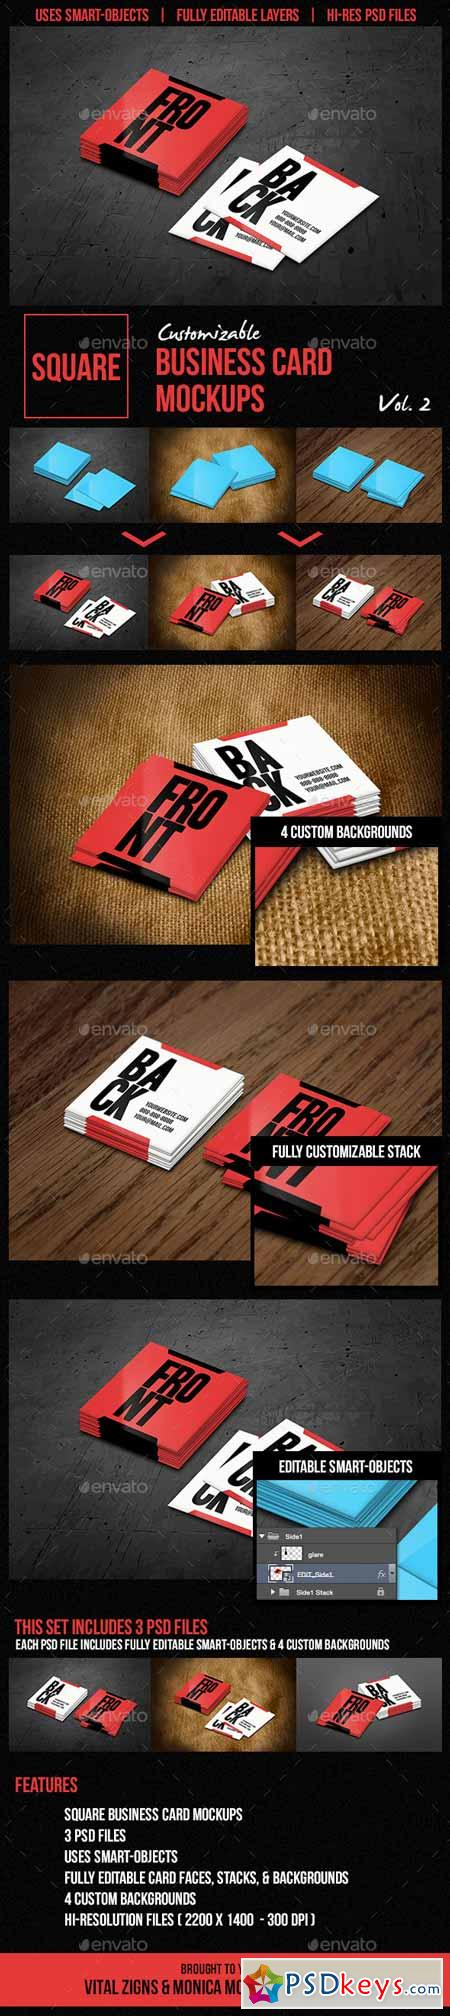 Vol 2 page 6 free download photoshop vector stock image via square business card mockups vol 2 11644576 reheart Images